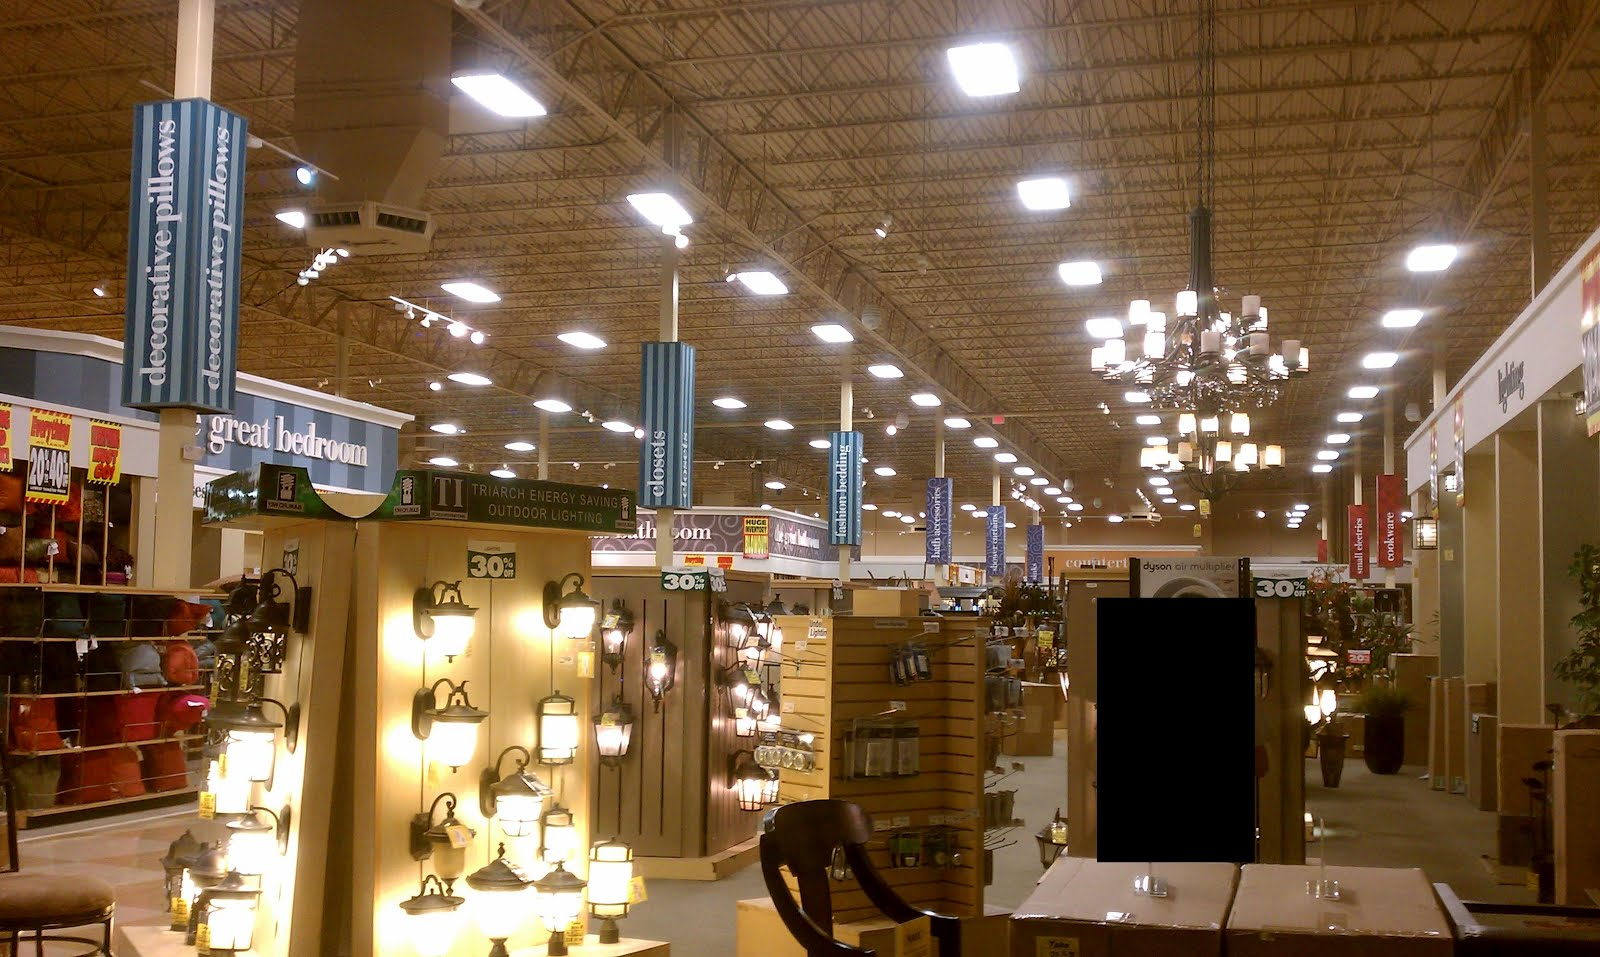 sears kitchen packages ikea cabinet handles louisiana and texas southern malls retail: goodbye ...